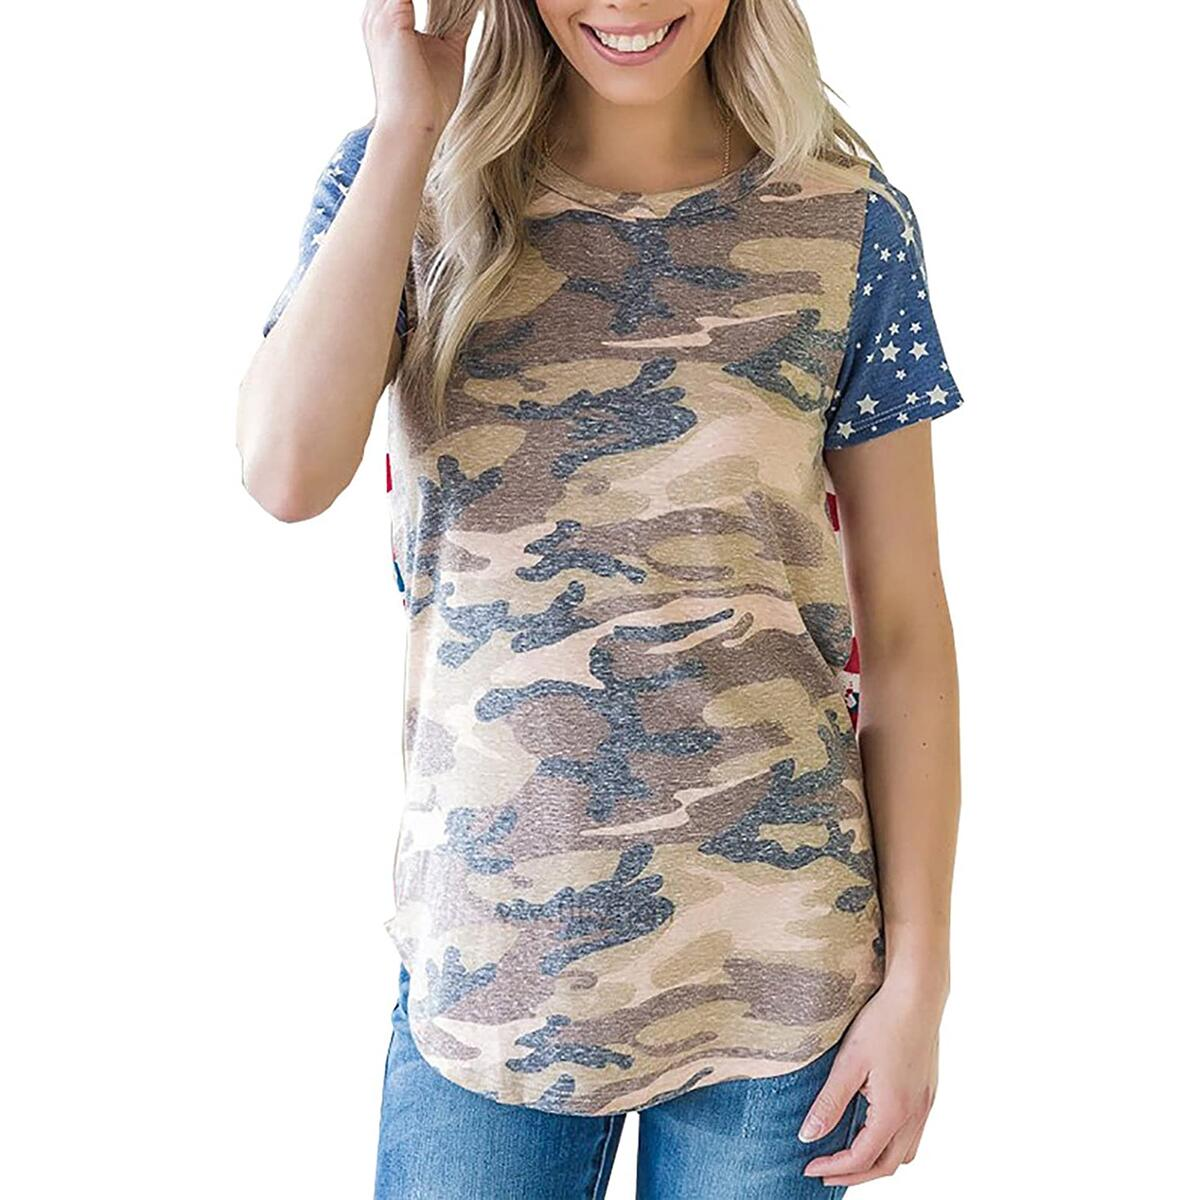 Alelly Women's Summer Casual O-Neck Short Sleeve T Shirts Loose Tops Blouse